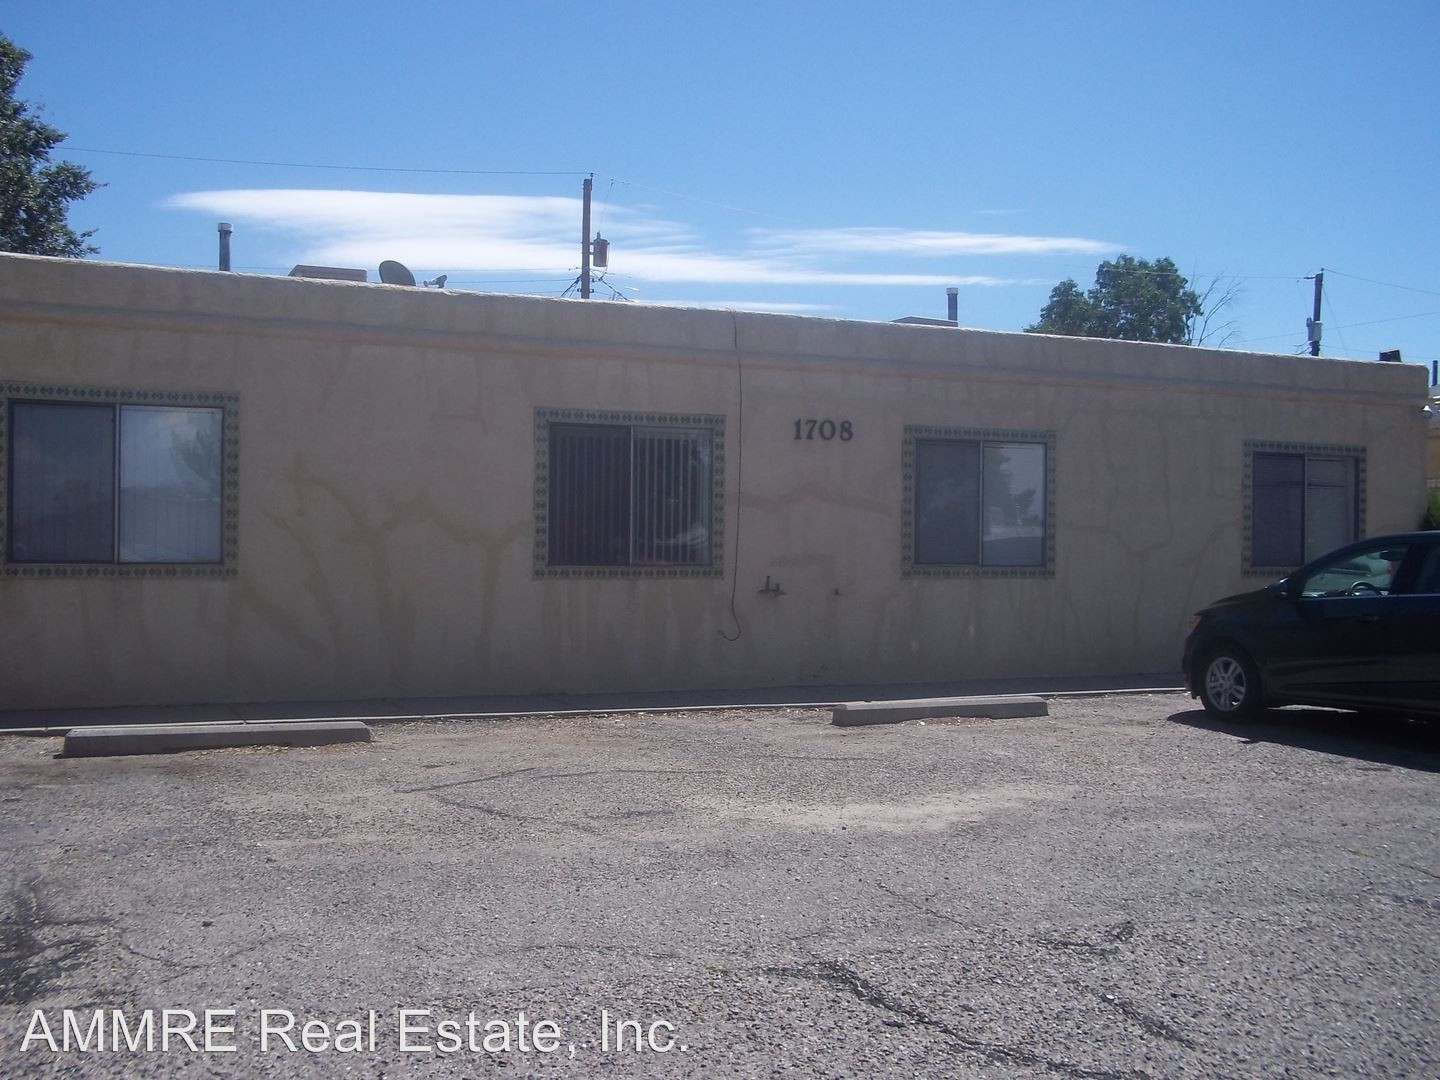 1708 nm 500 albuquerque nm 87105 2 bedroom house for rent for 650